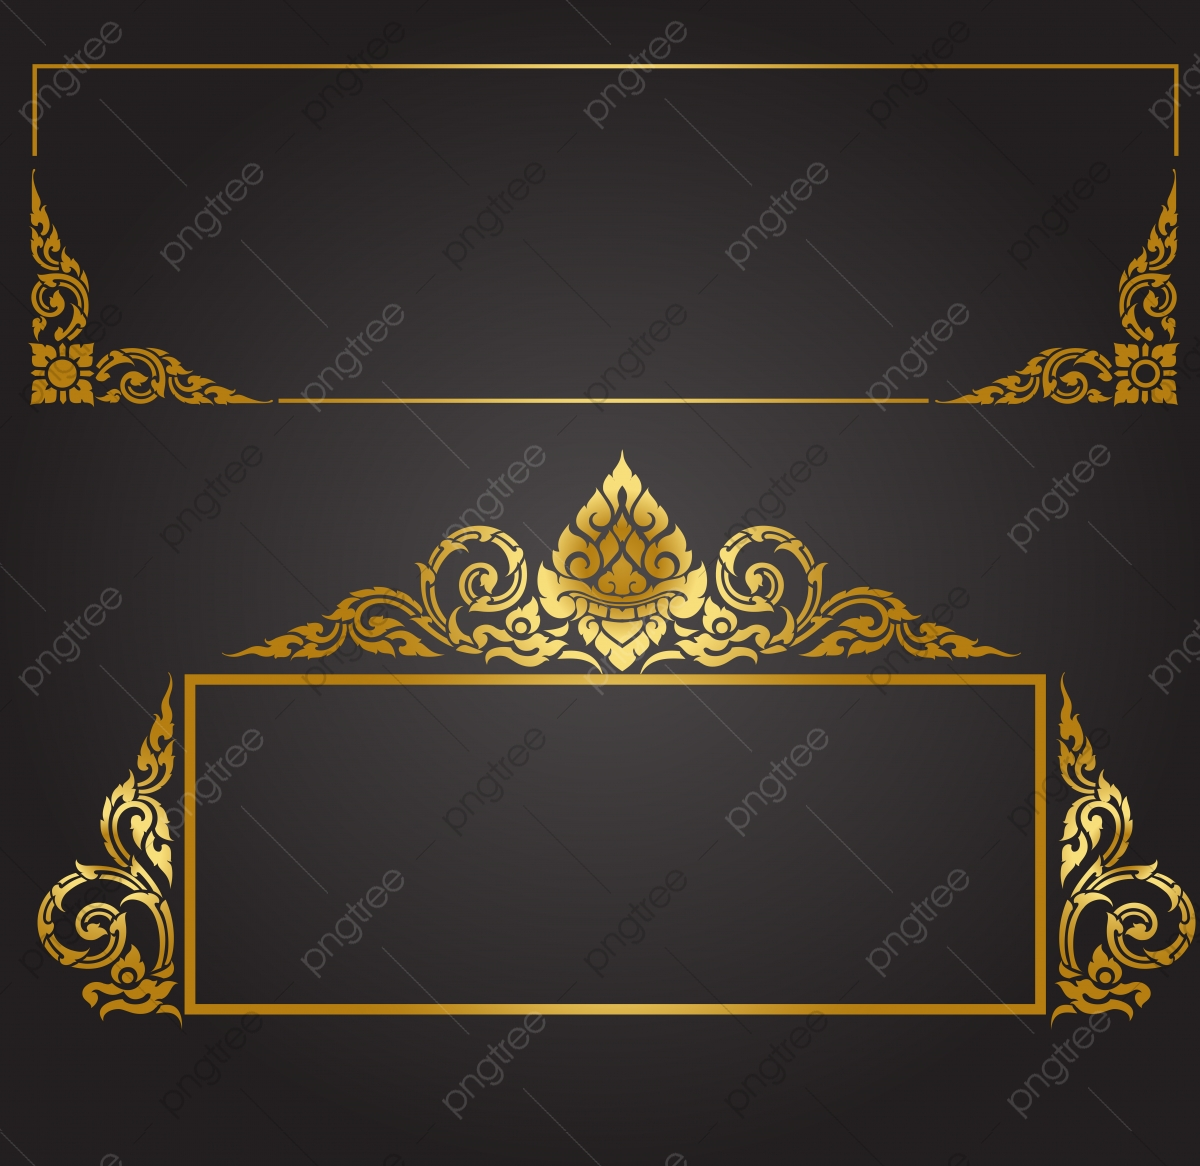 Featured image of post Border Design Aesthetic Frames Png Choose from over a million free vectors clipart graphics vector art images design templates and illustrations created by artists worldwide